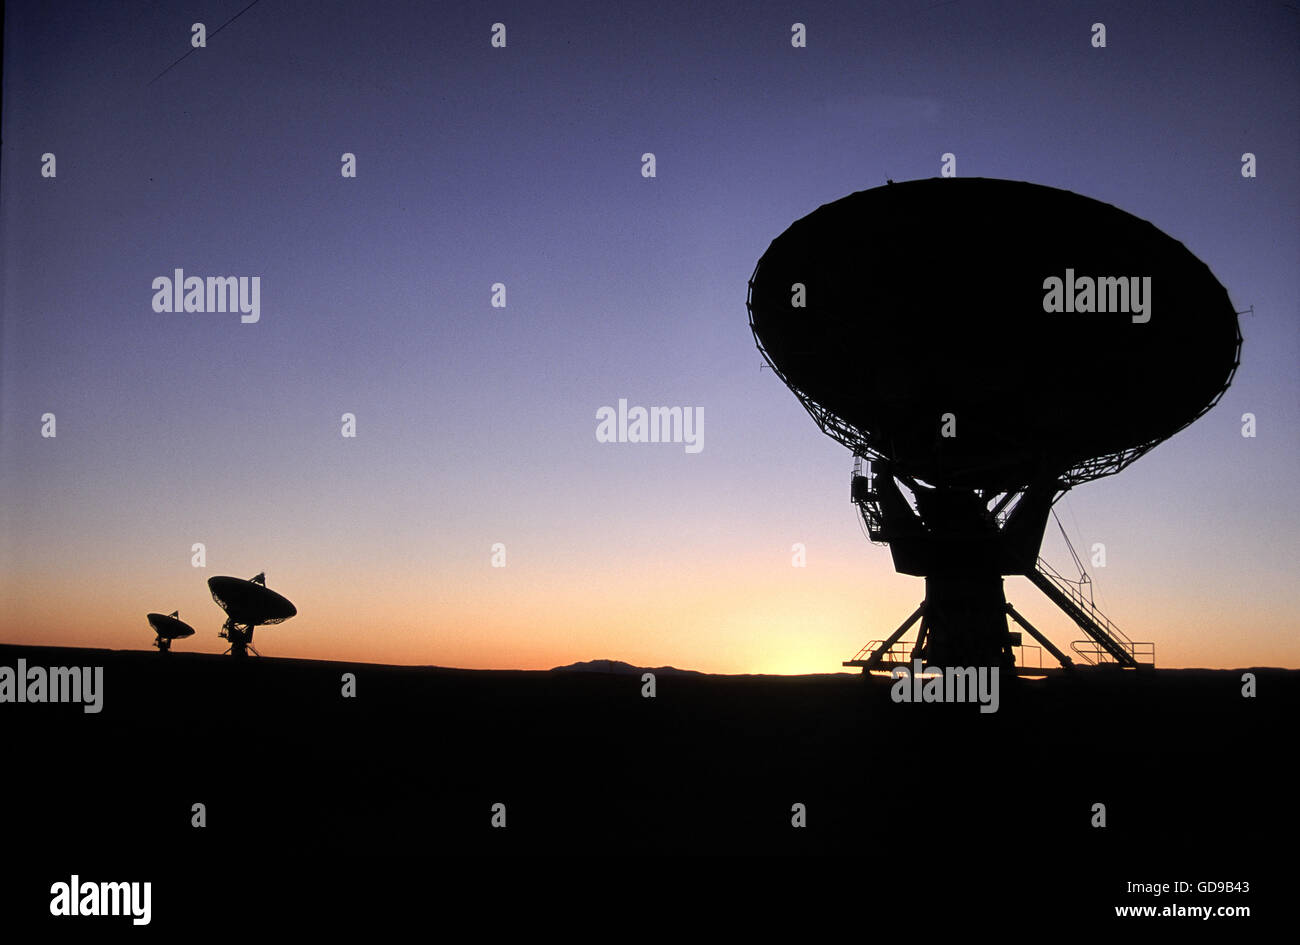 VLA Radiotelescope Dishes. The Very Large Array, one of the world's premier astronomical radio observatories. Stock Photo